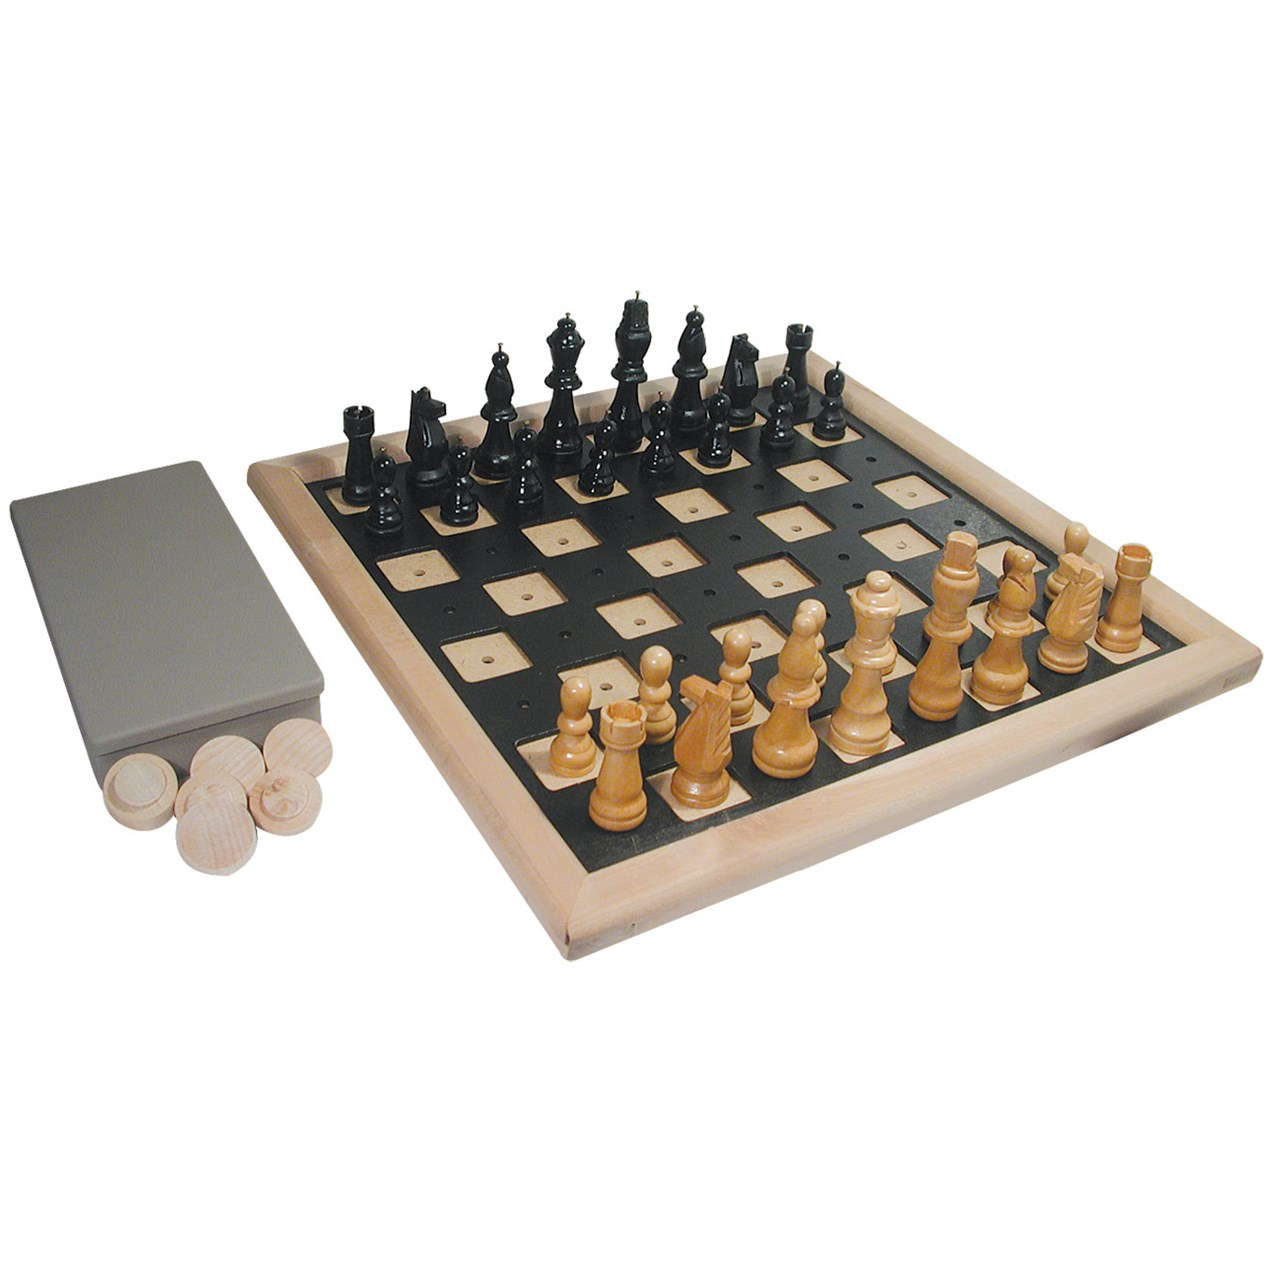 Maxiaids Deluxe Chess And Checkers Set